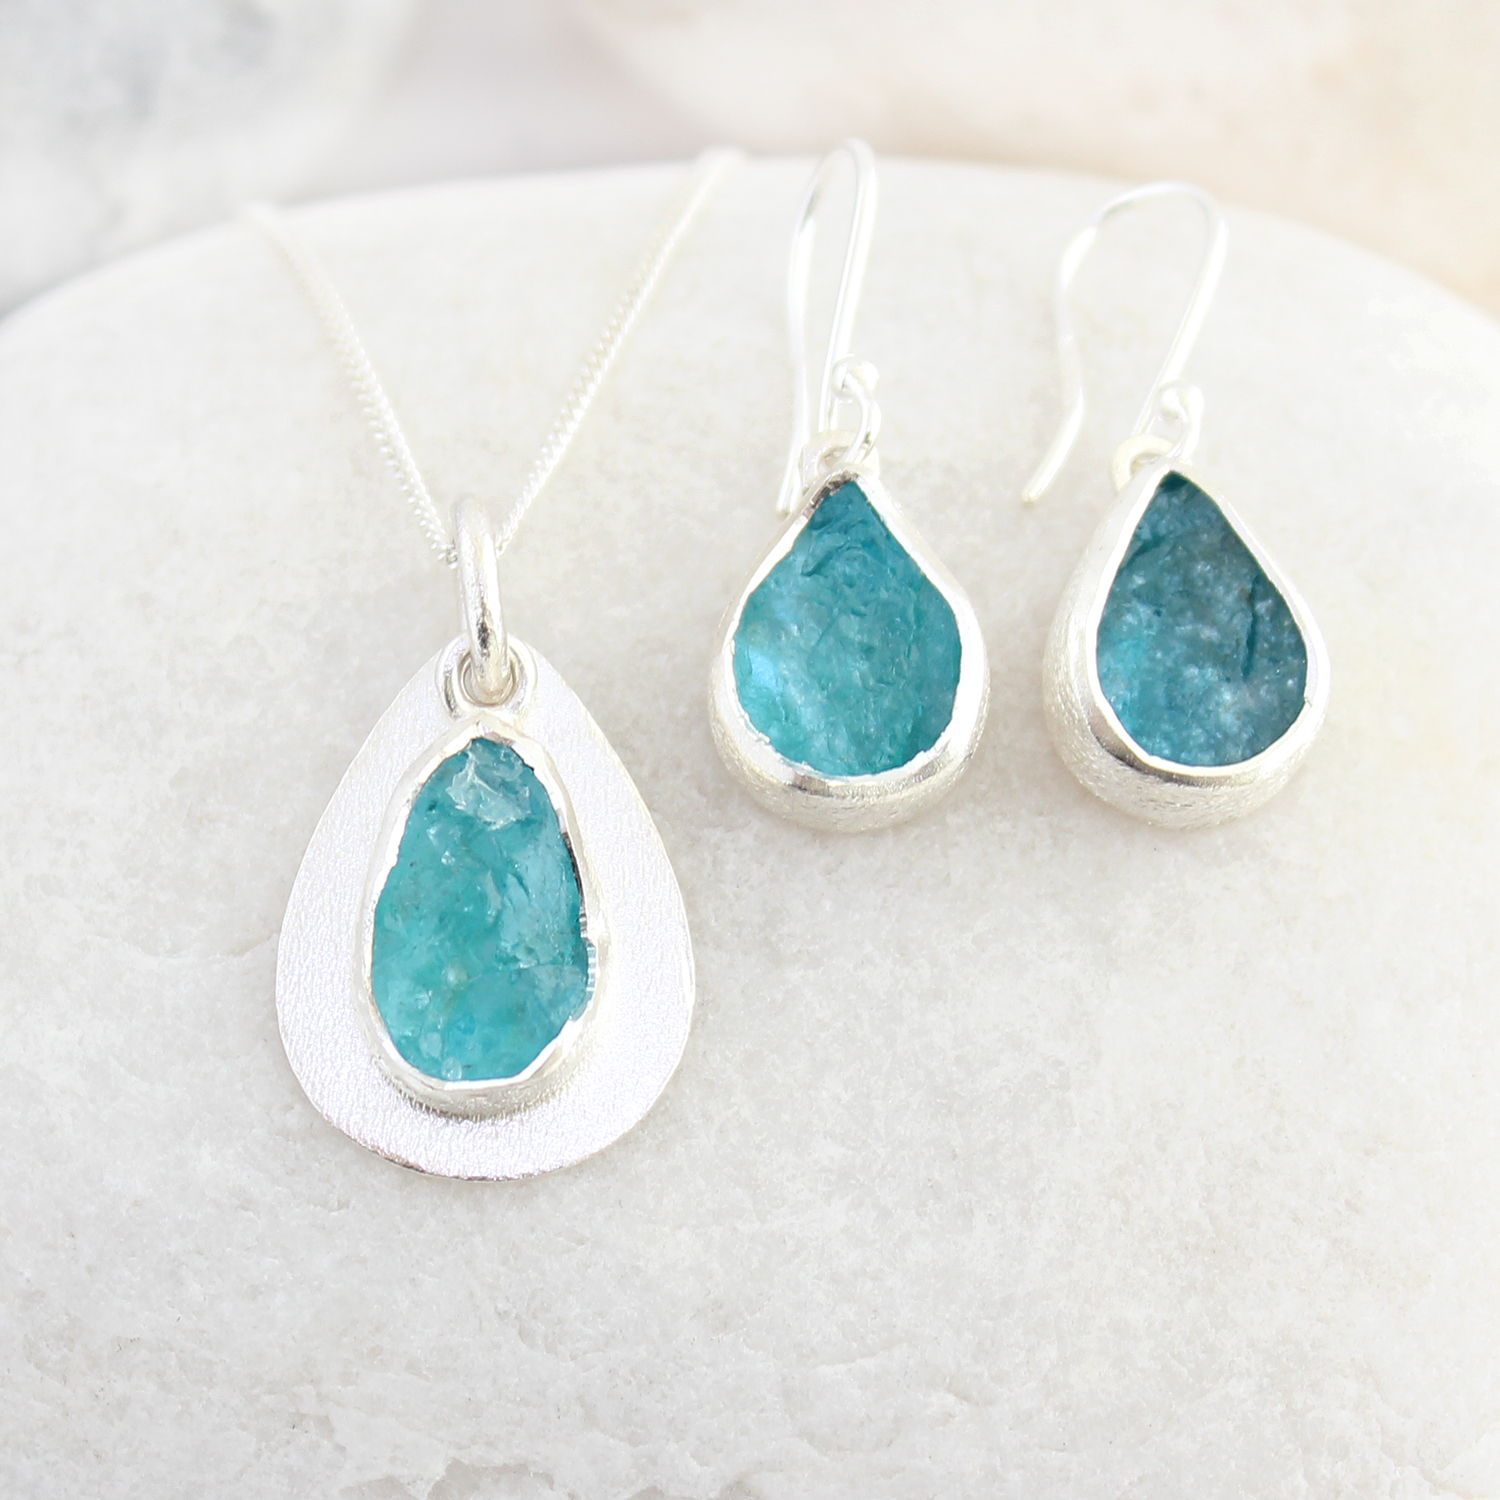 artisan dona designs earrings jewelry miller med llc medium collection rain water apatite product large with copy